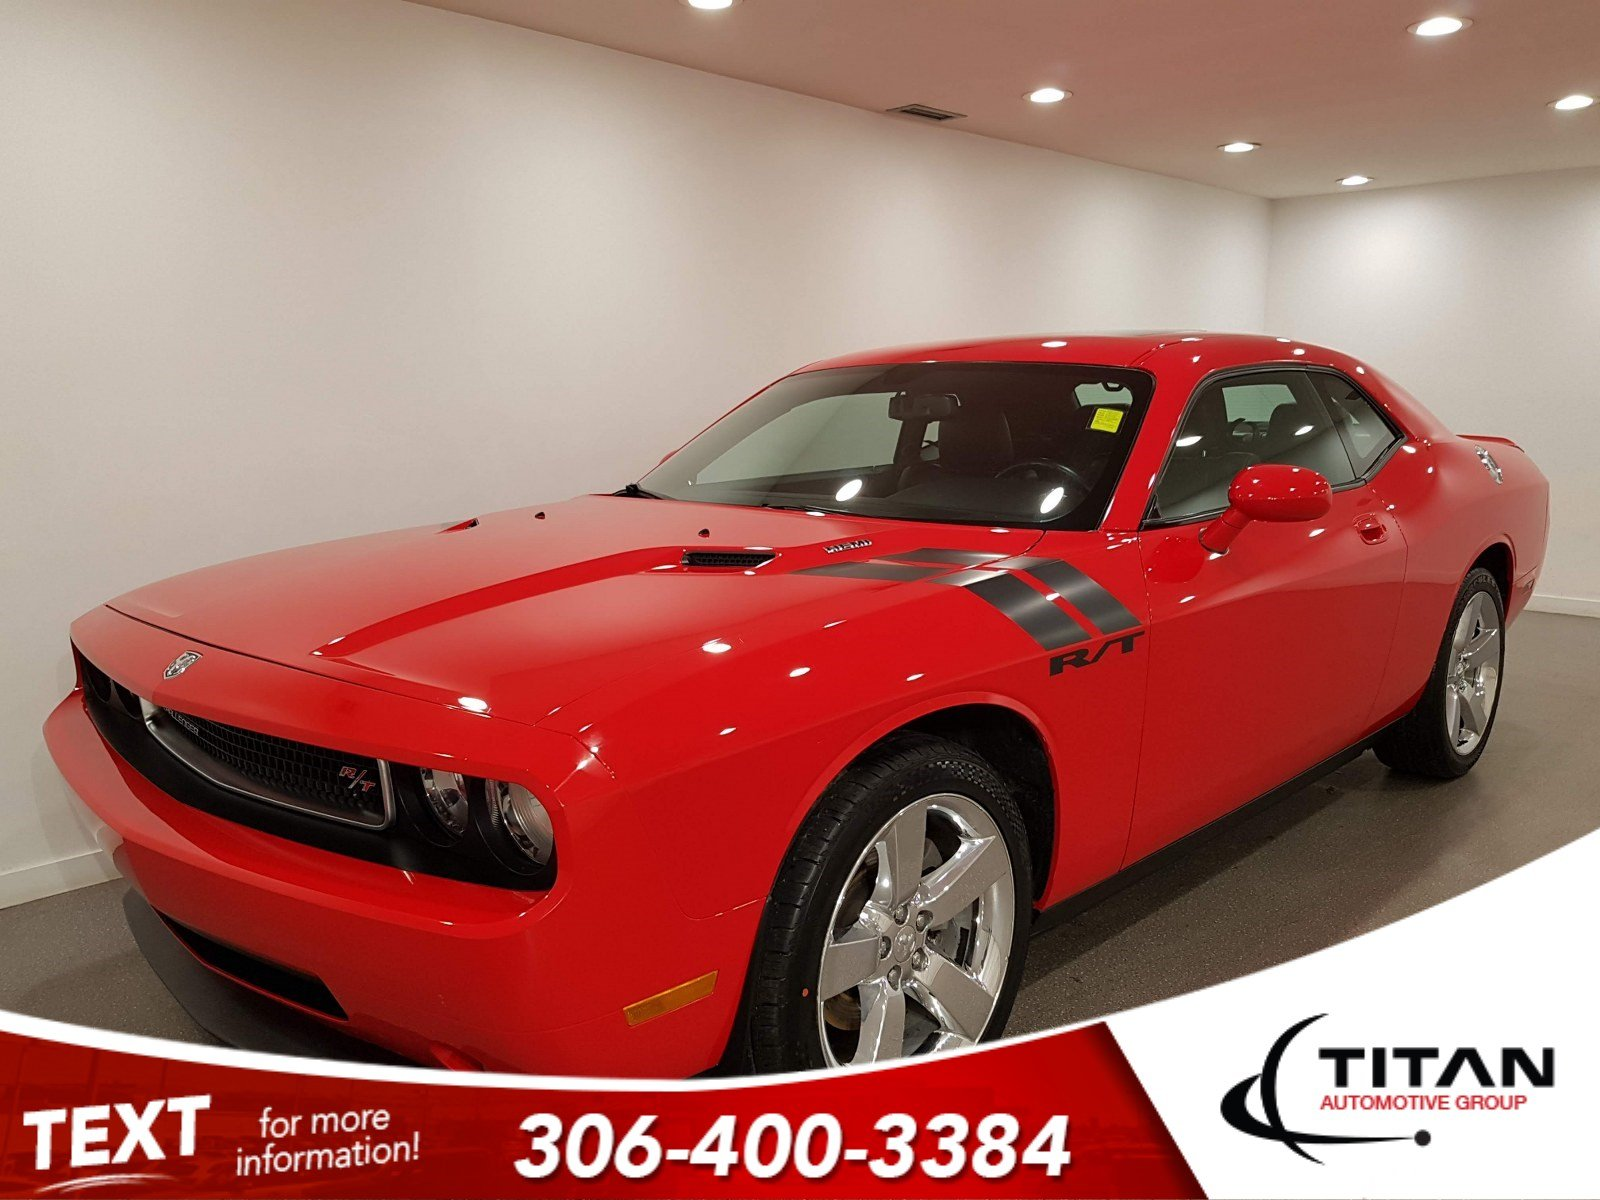 Pre-Owned 2010 Dodge Challenger R/T|V8|6spd|Leather|NAV|Rims|Htd Seats|